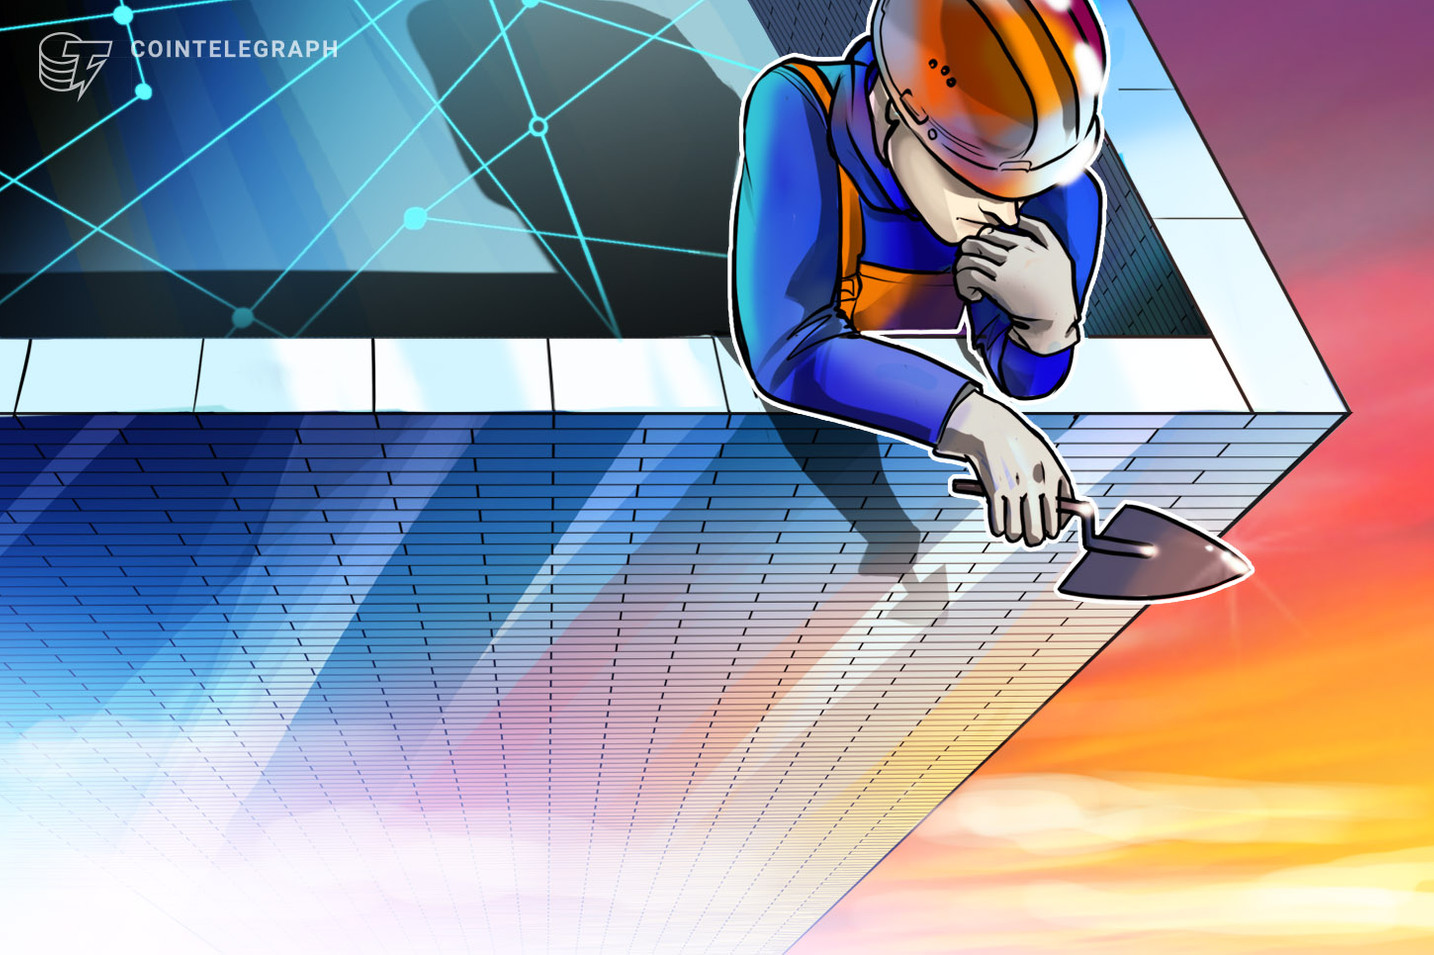 Russian Duma wants to regulate crypto mining as business